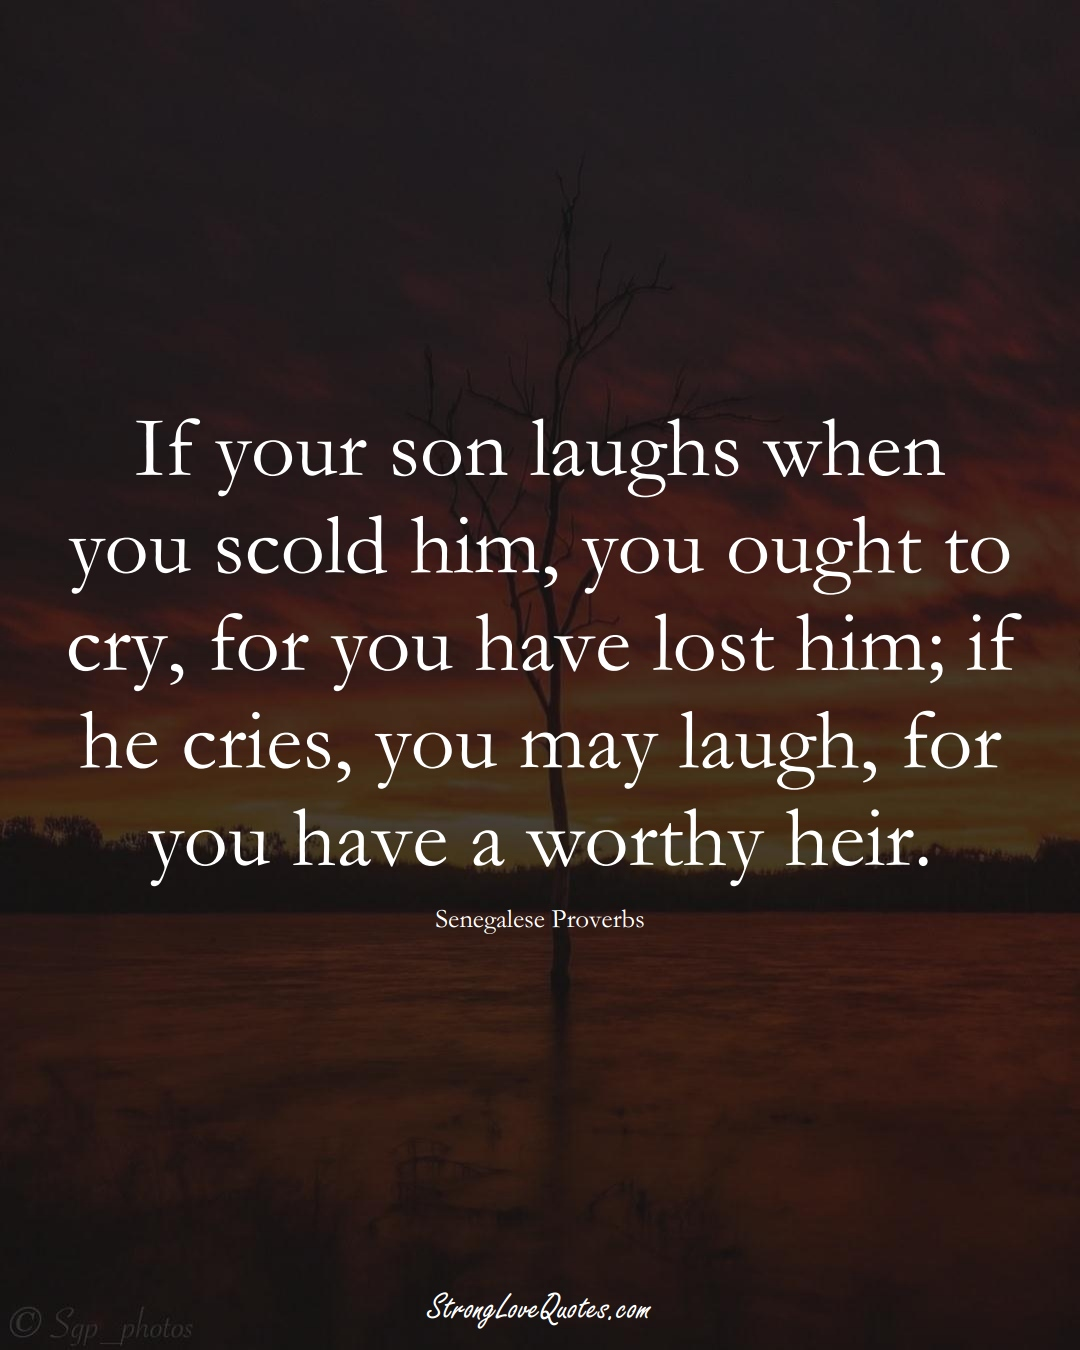 If your son laughs when you scold him, you ought to cry, for you have lost him; if he cries, you may laugh, for you have a worthy heir. (Senegalese Sayings);  #AfricanSayings